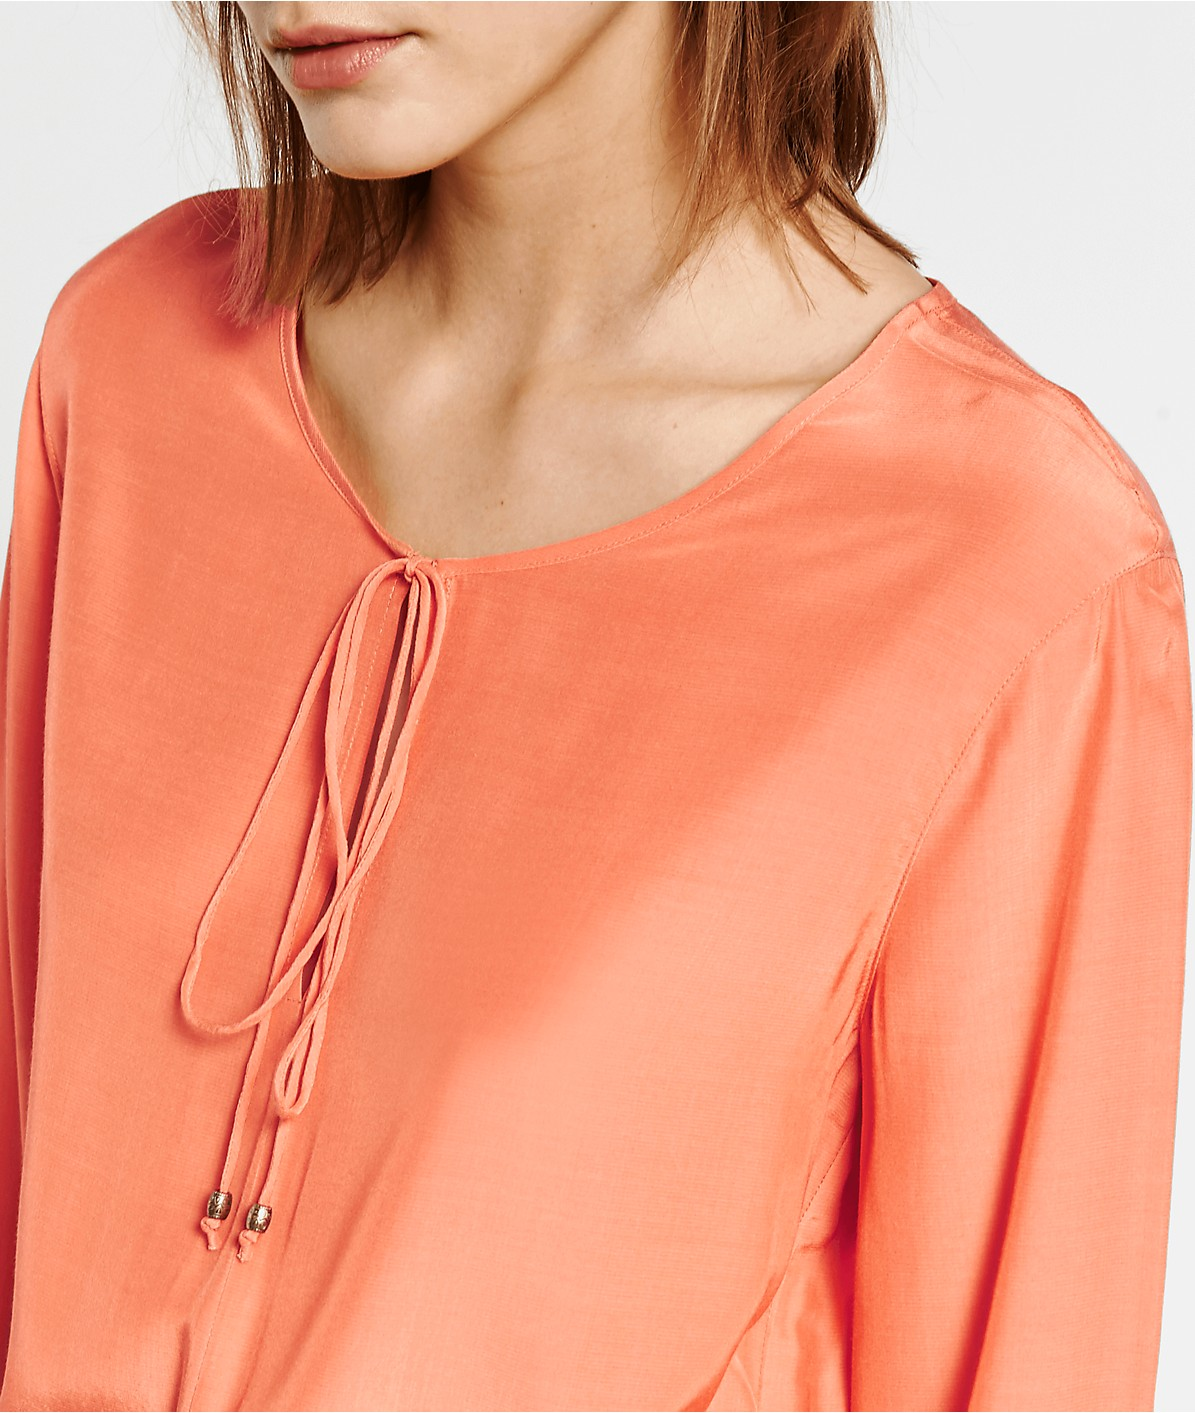 Tunic top F2172700 from liebeskind